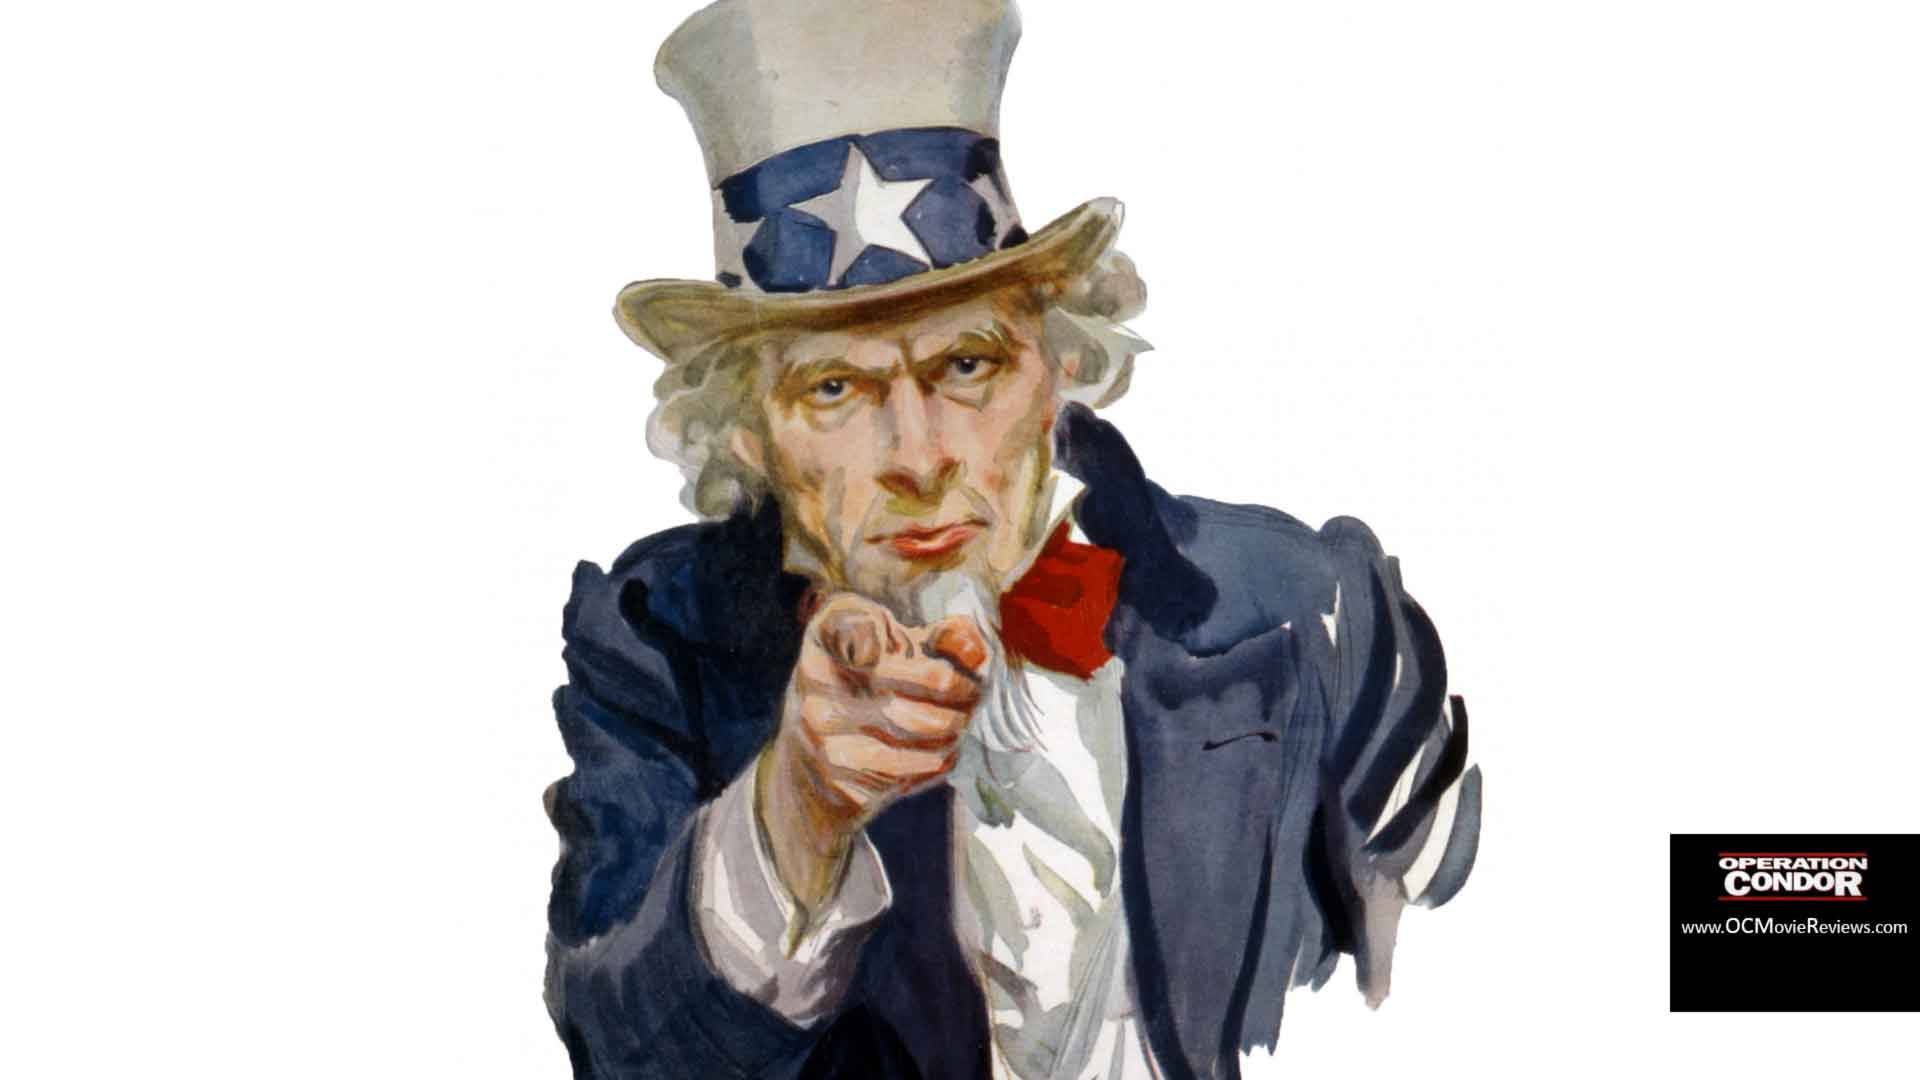 We Want You! – We've Seen Films You People Wouldn't Believe - OC Movie Reviews - Movie Reviews, Movie News, Documentary Reviews, Short Films, Short Film Reviews, Trailers, Movie Trailers, Interviews, film reviews, film news, hollywood, indie films, documentaries